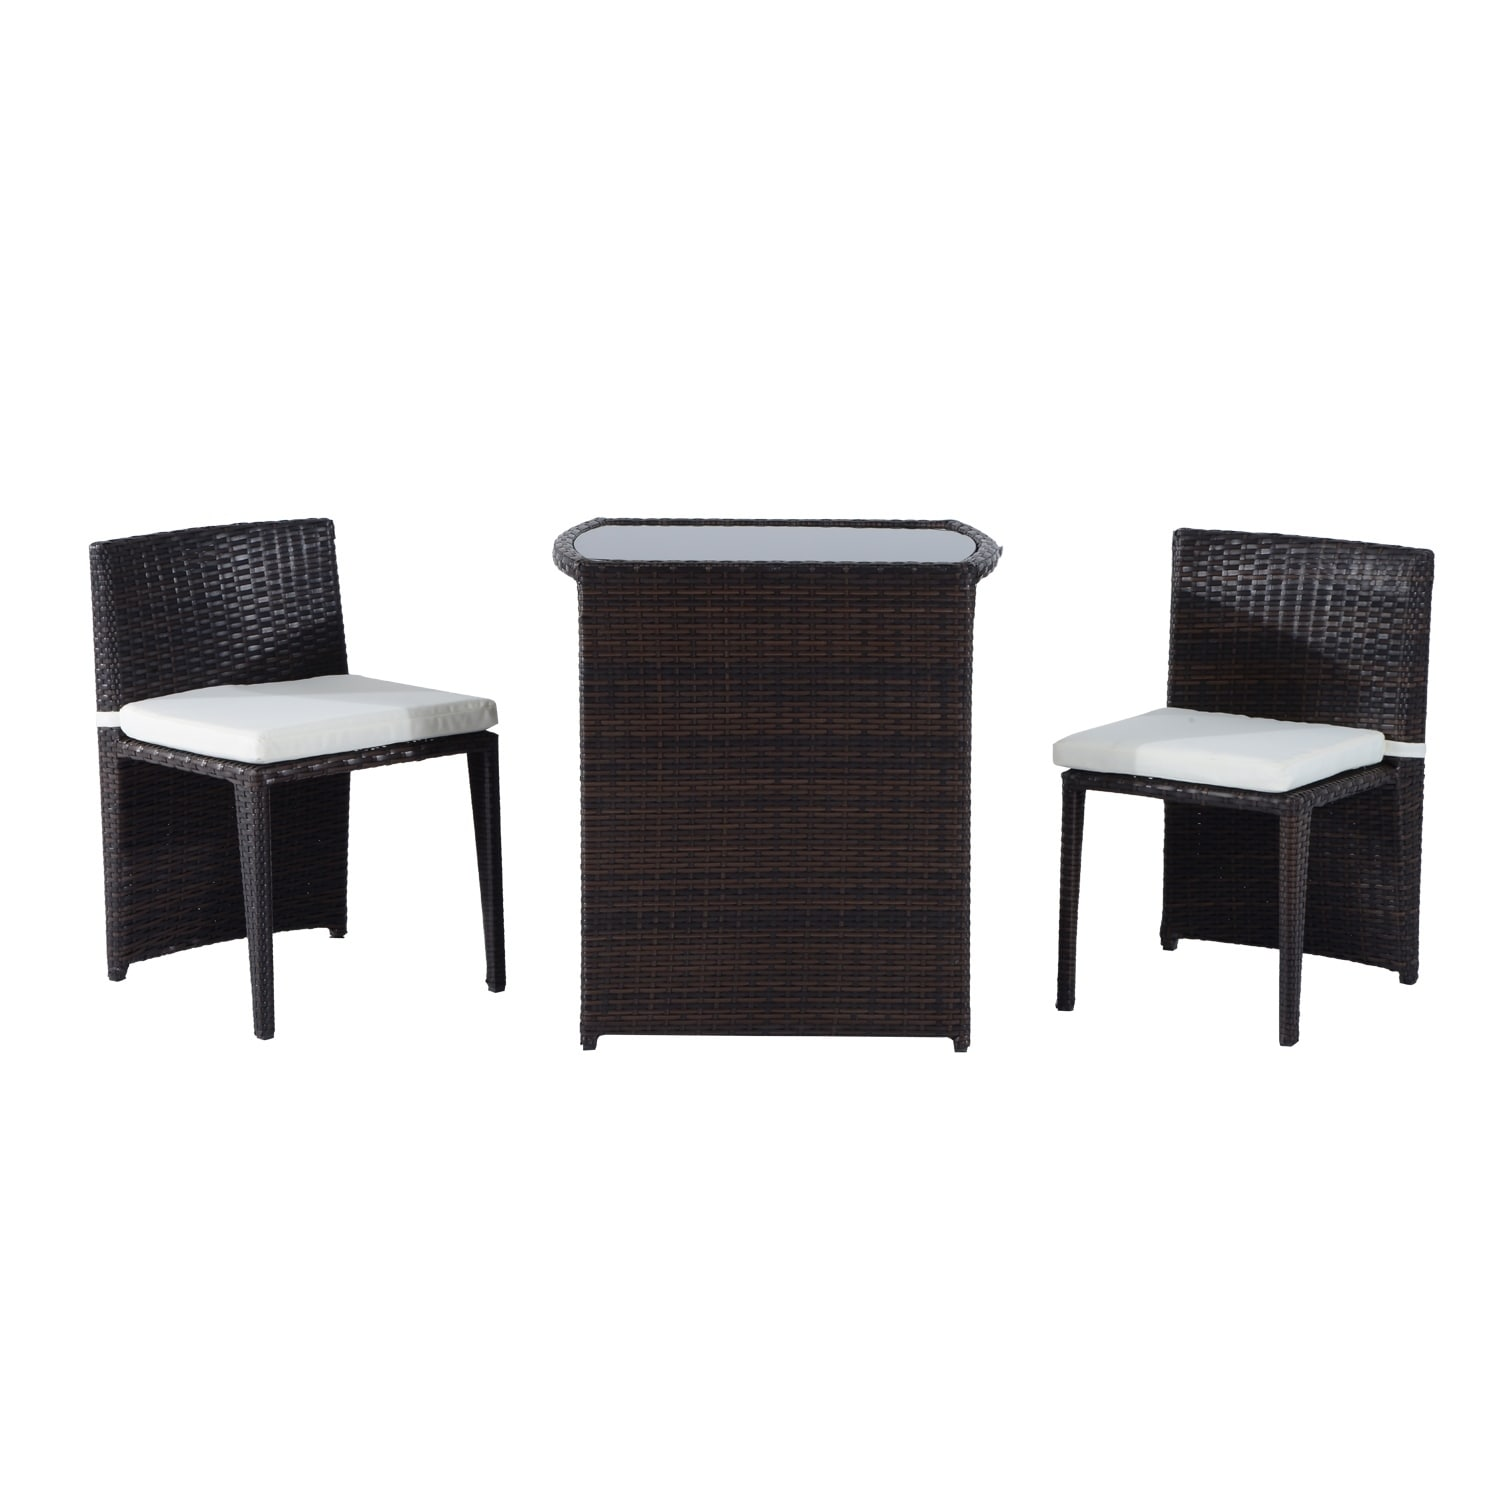 Outsunny 3 Piece Chair and Table Rattan Wicker Patio Nesting Furniture Set  sc 1 st  Overstock.com & Shop Outsunny 3 Piece Chair and Table Rattan Wicker Patio Nesting ...